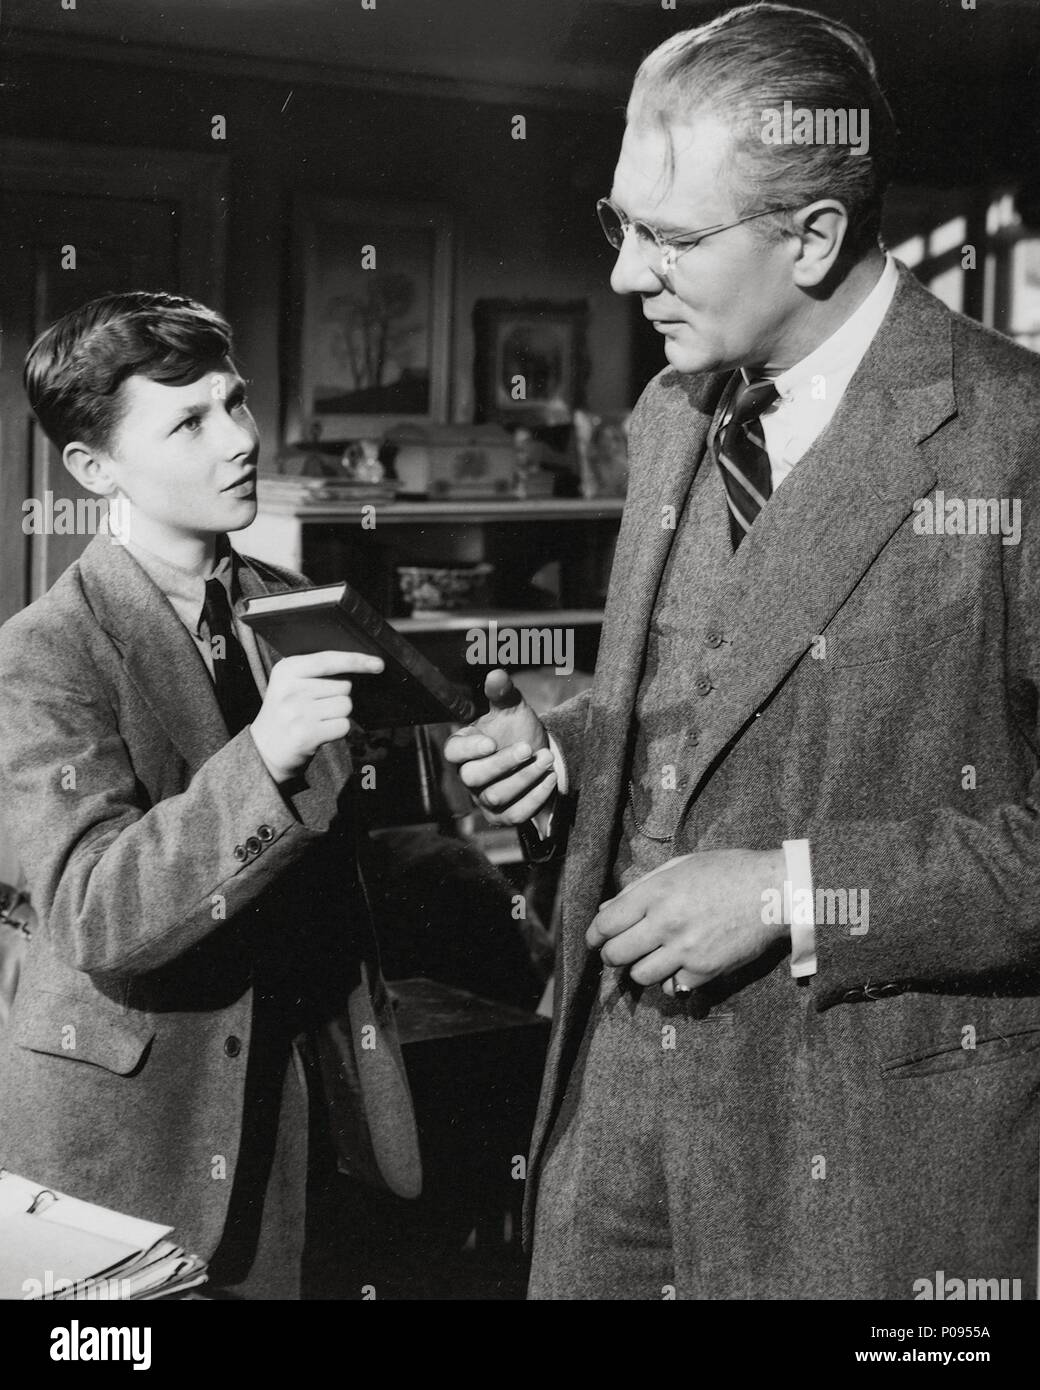 Original Film Title: THE BROWNING VERSION.  English Title: THE BROWNING VERSION.  Film Director: ANTHONY ASQUITH.  Year: 1951.  Stars: MICHAEL REDGRAVE. Credit: GFD/JAVELIN / Album Stock Photo